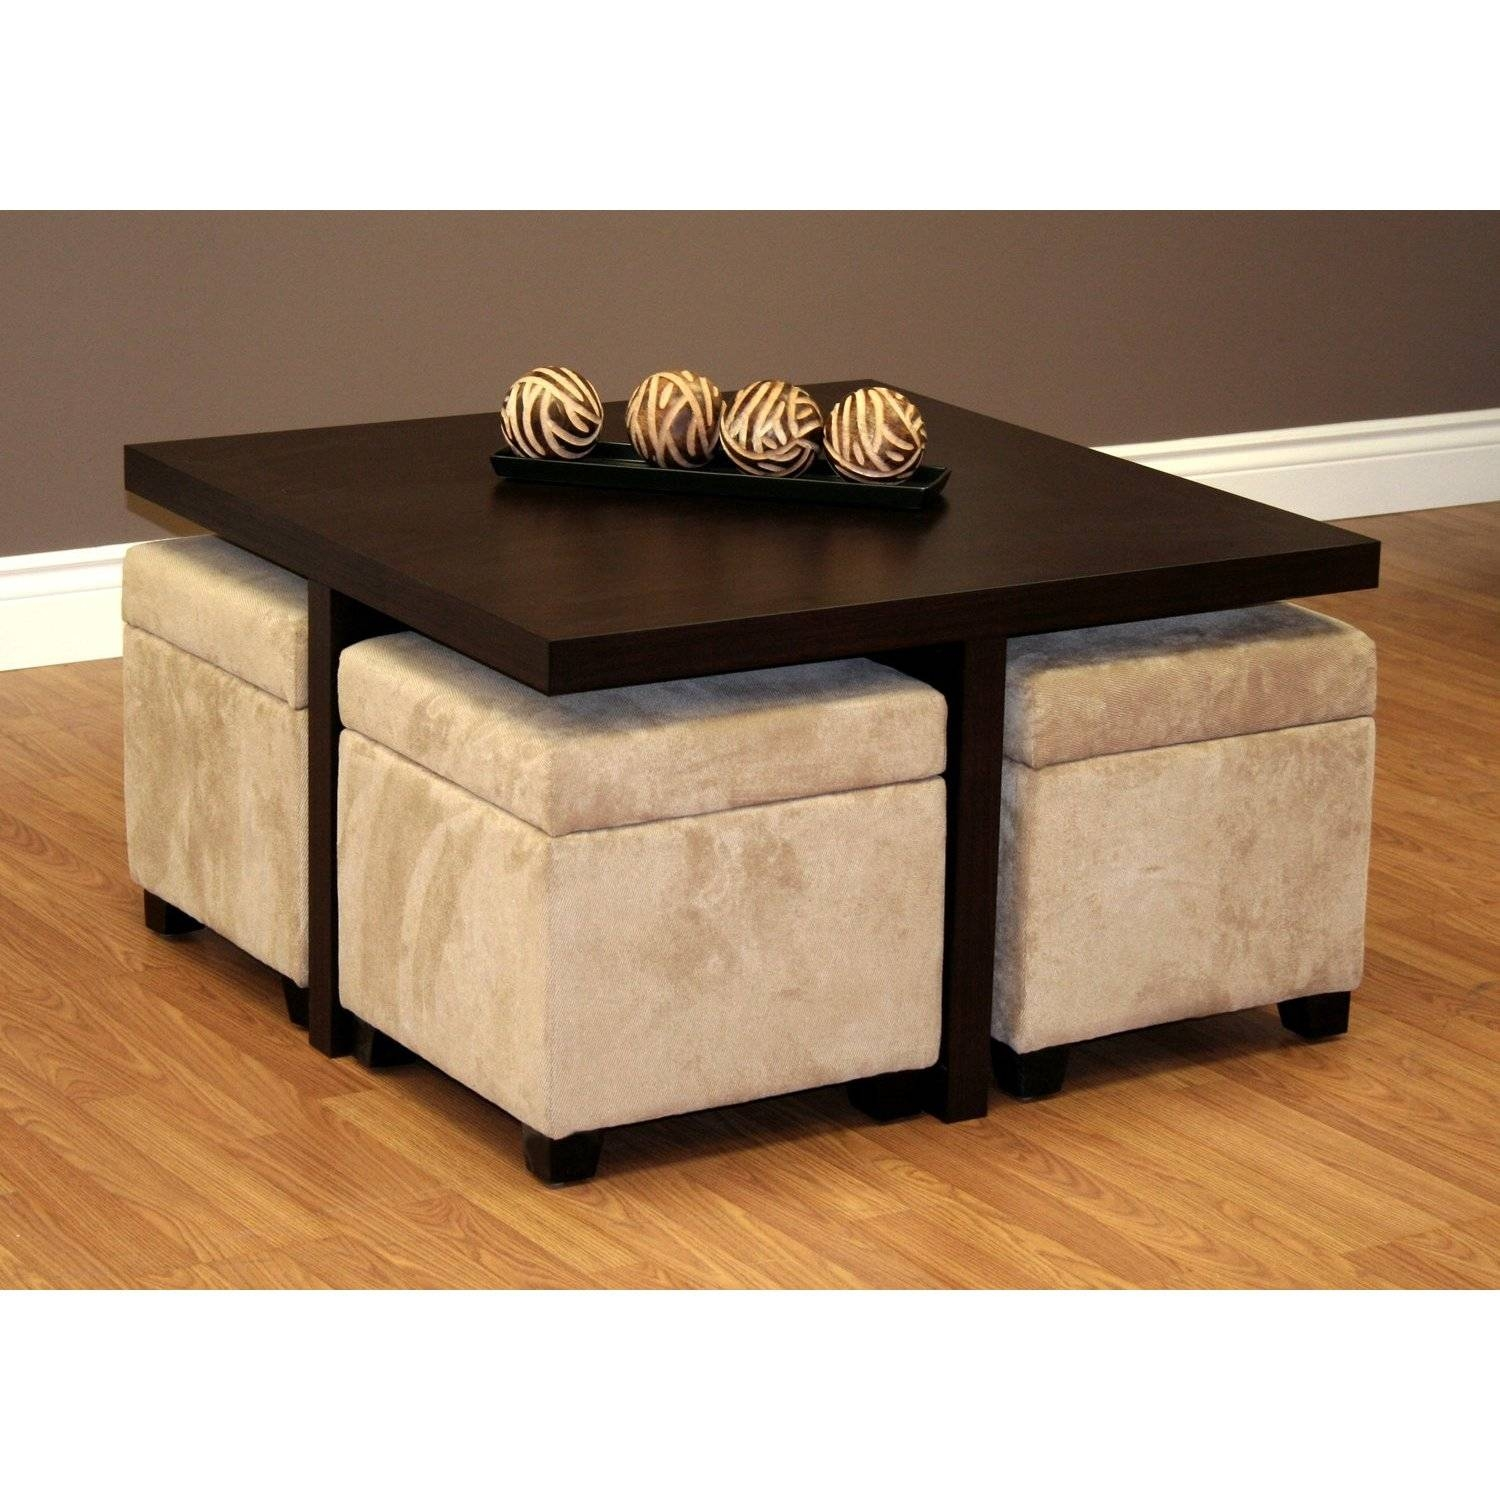 Furniture: Luxury Coffee Table With Stools For Living Room inside Coffee Table With Chairs (Image 24 of 30)